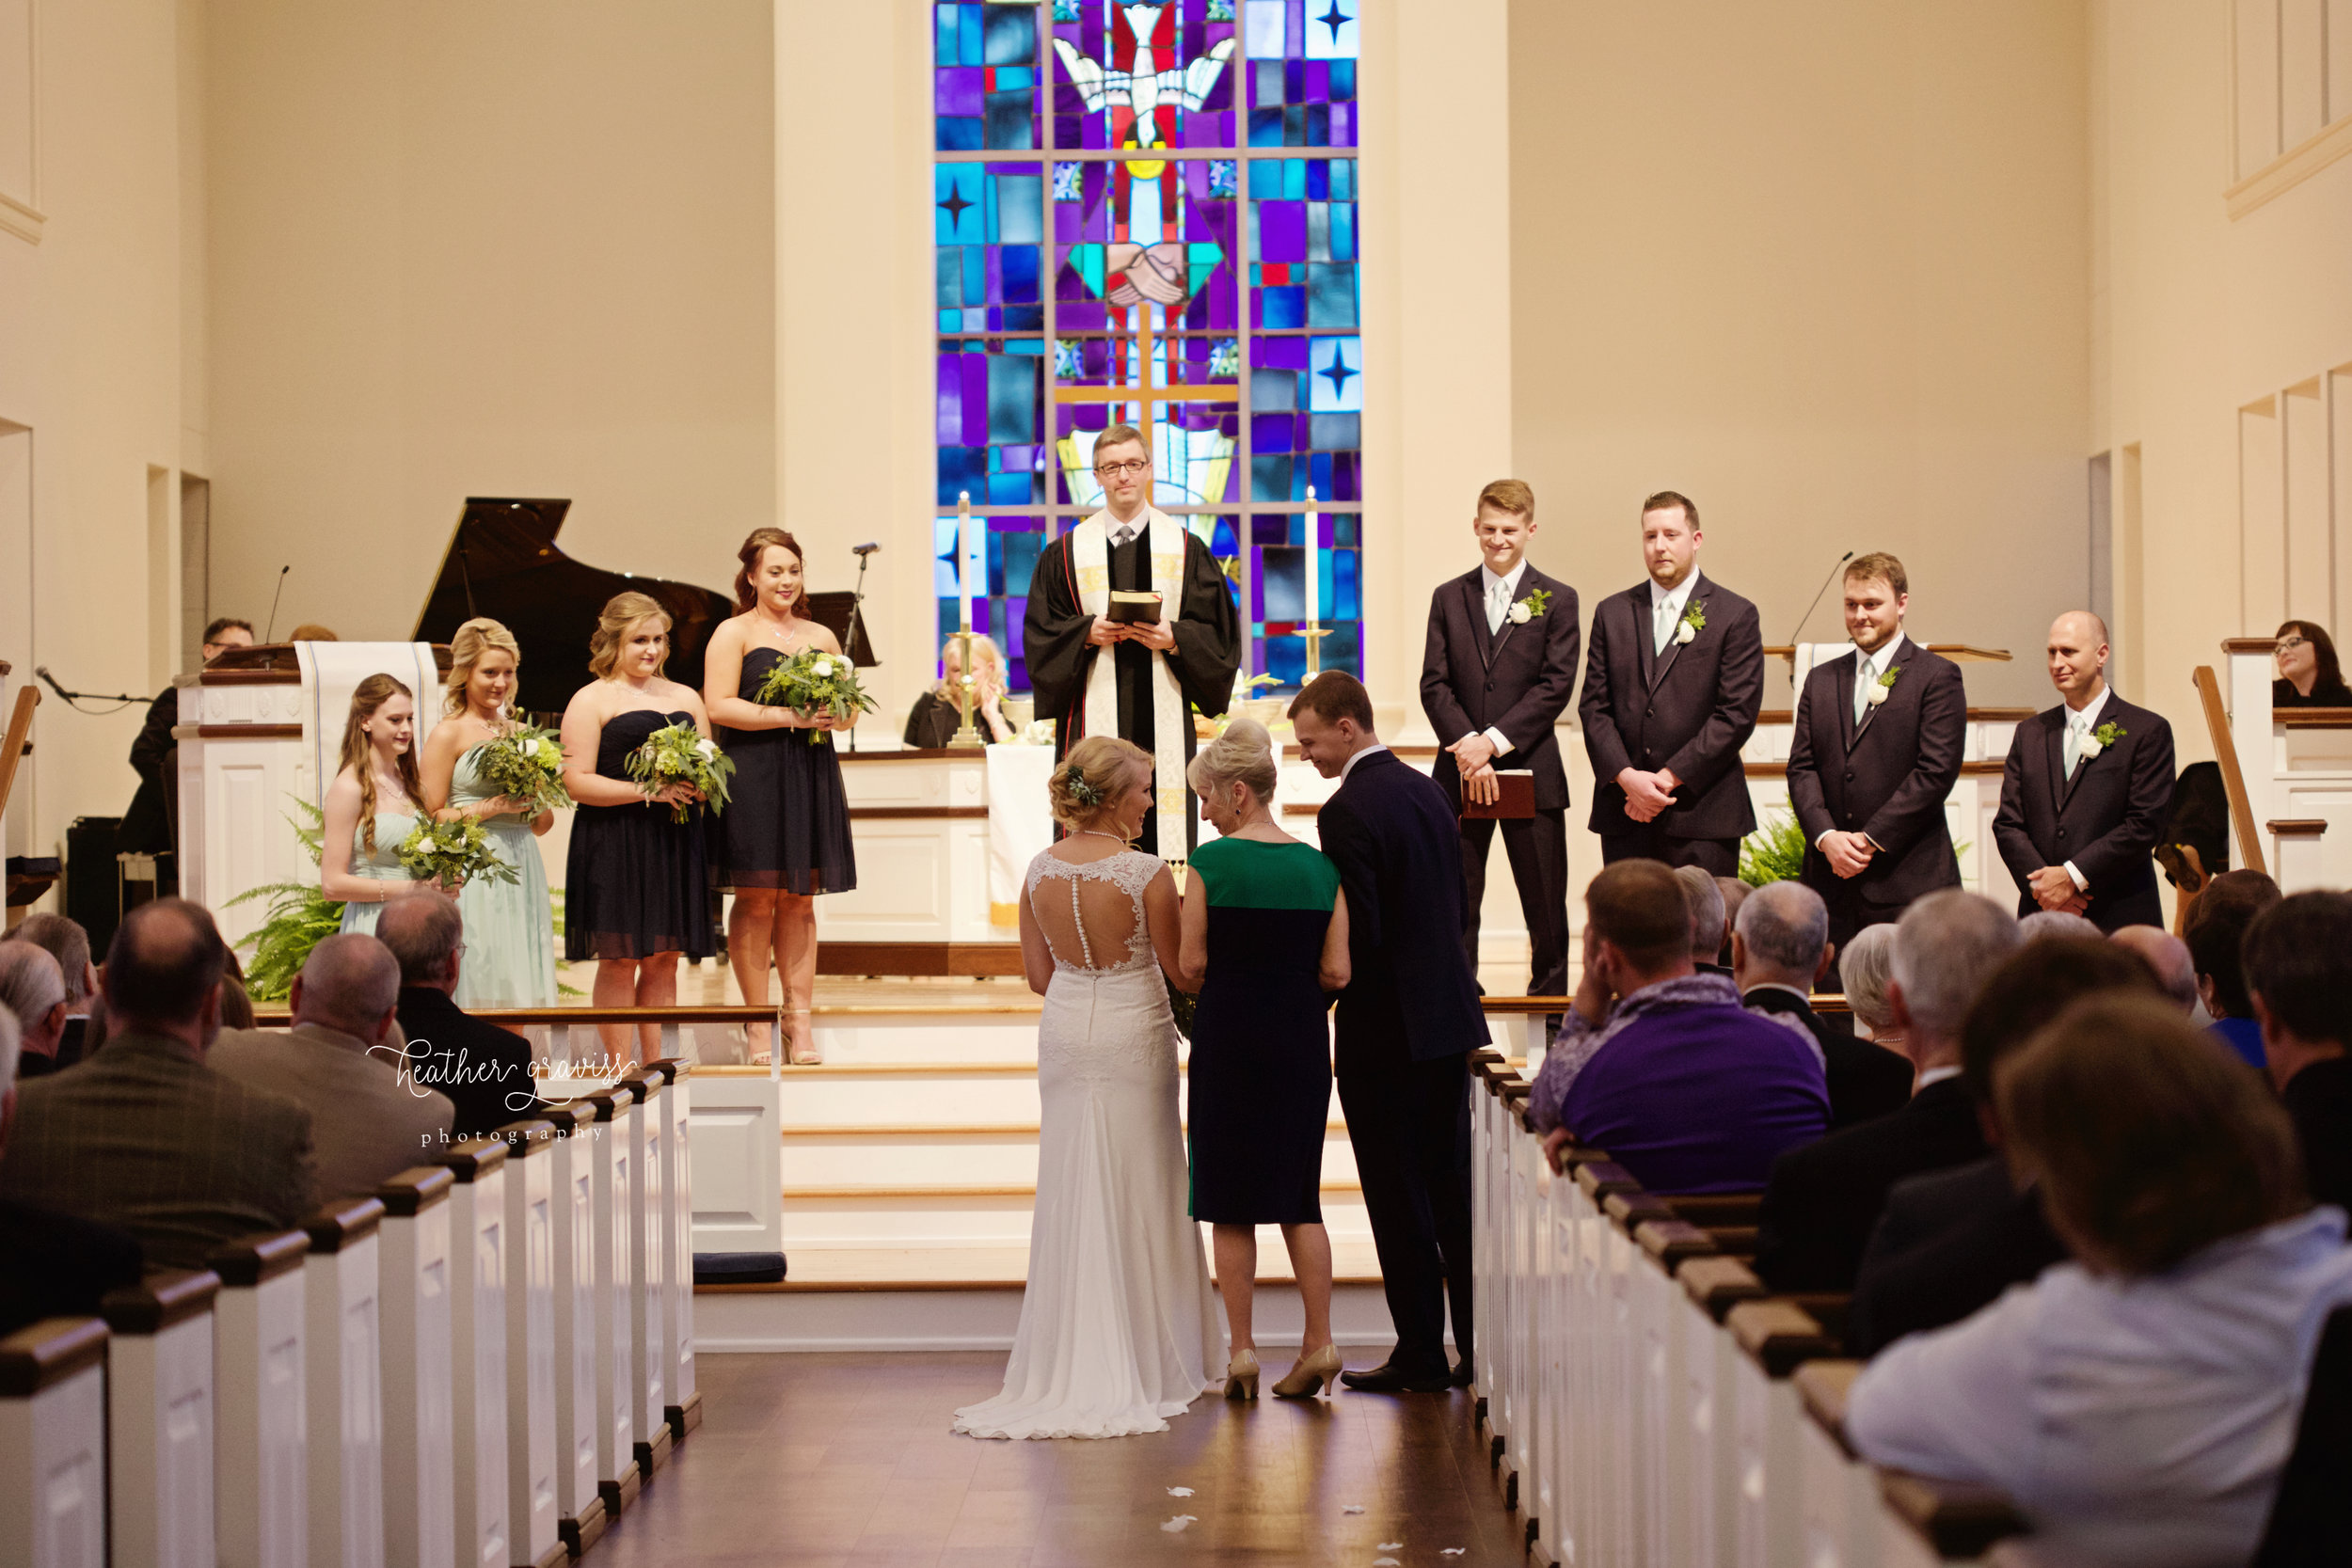 nashville middle tn wedding 064.jpg